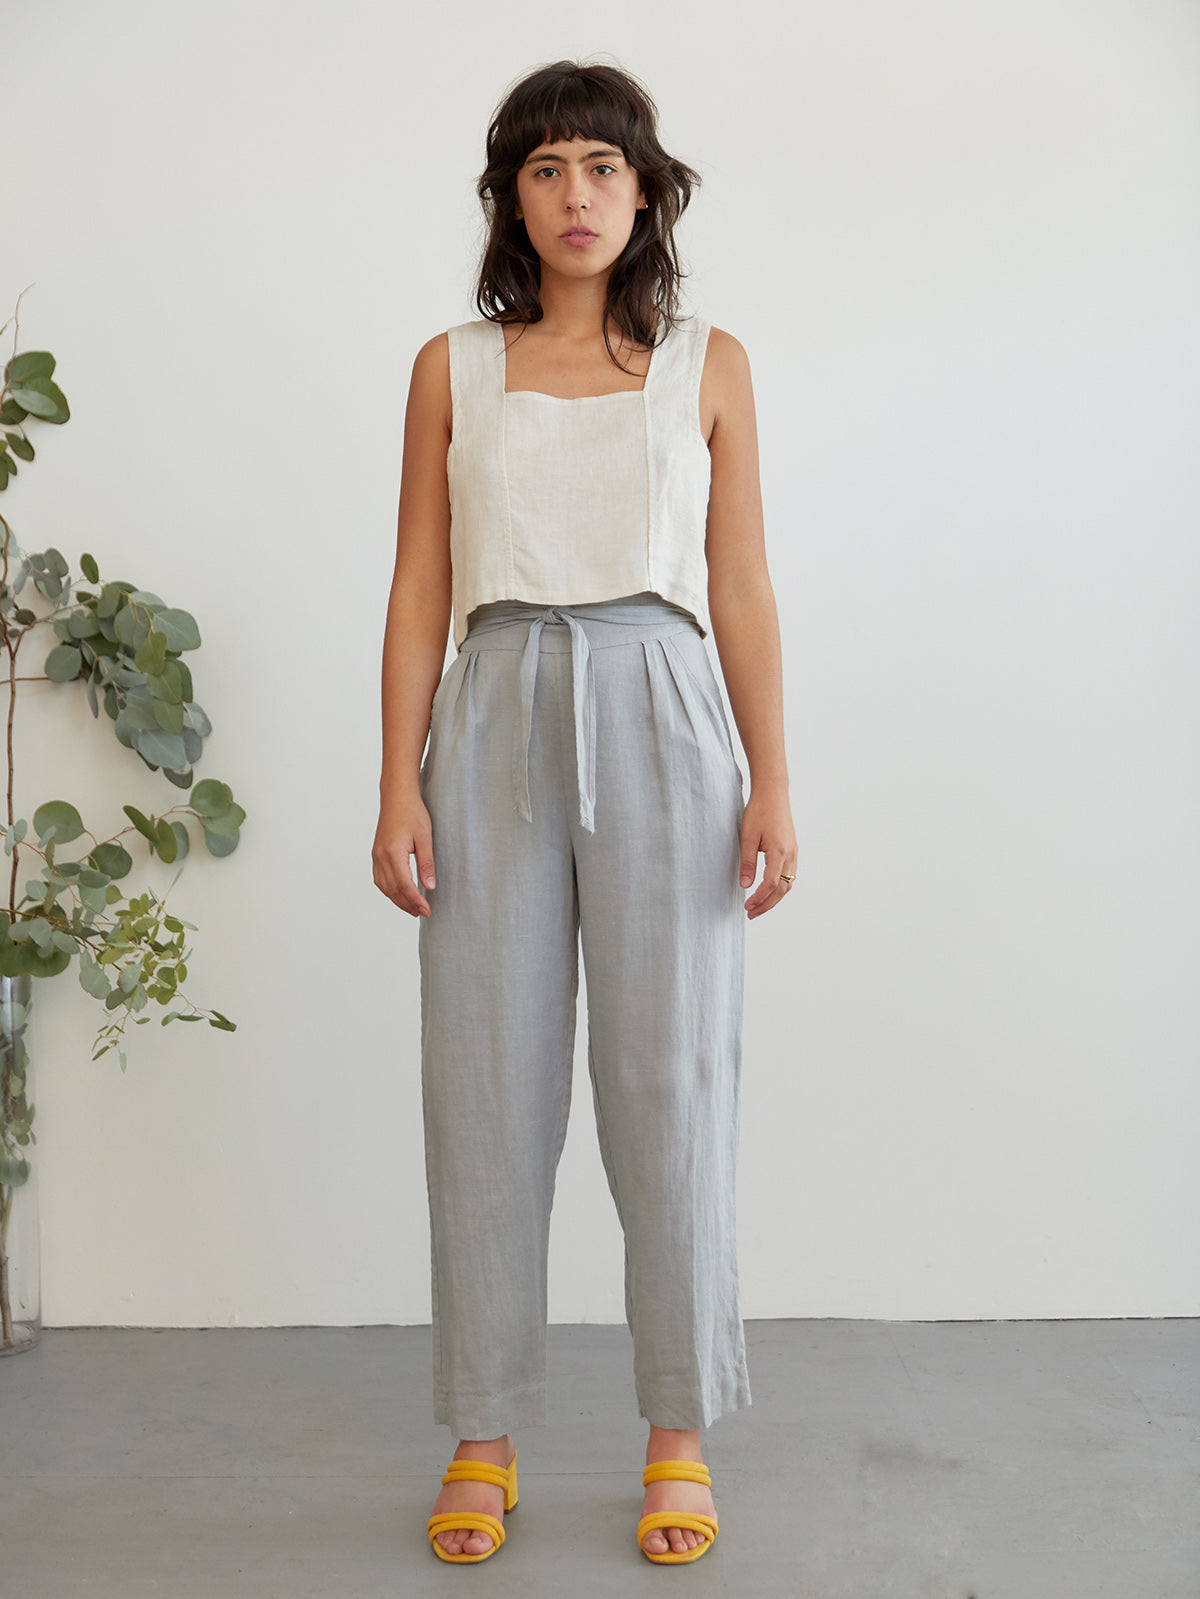 The Tulum Pant | CloudPants - sugarcandymtn.com